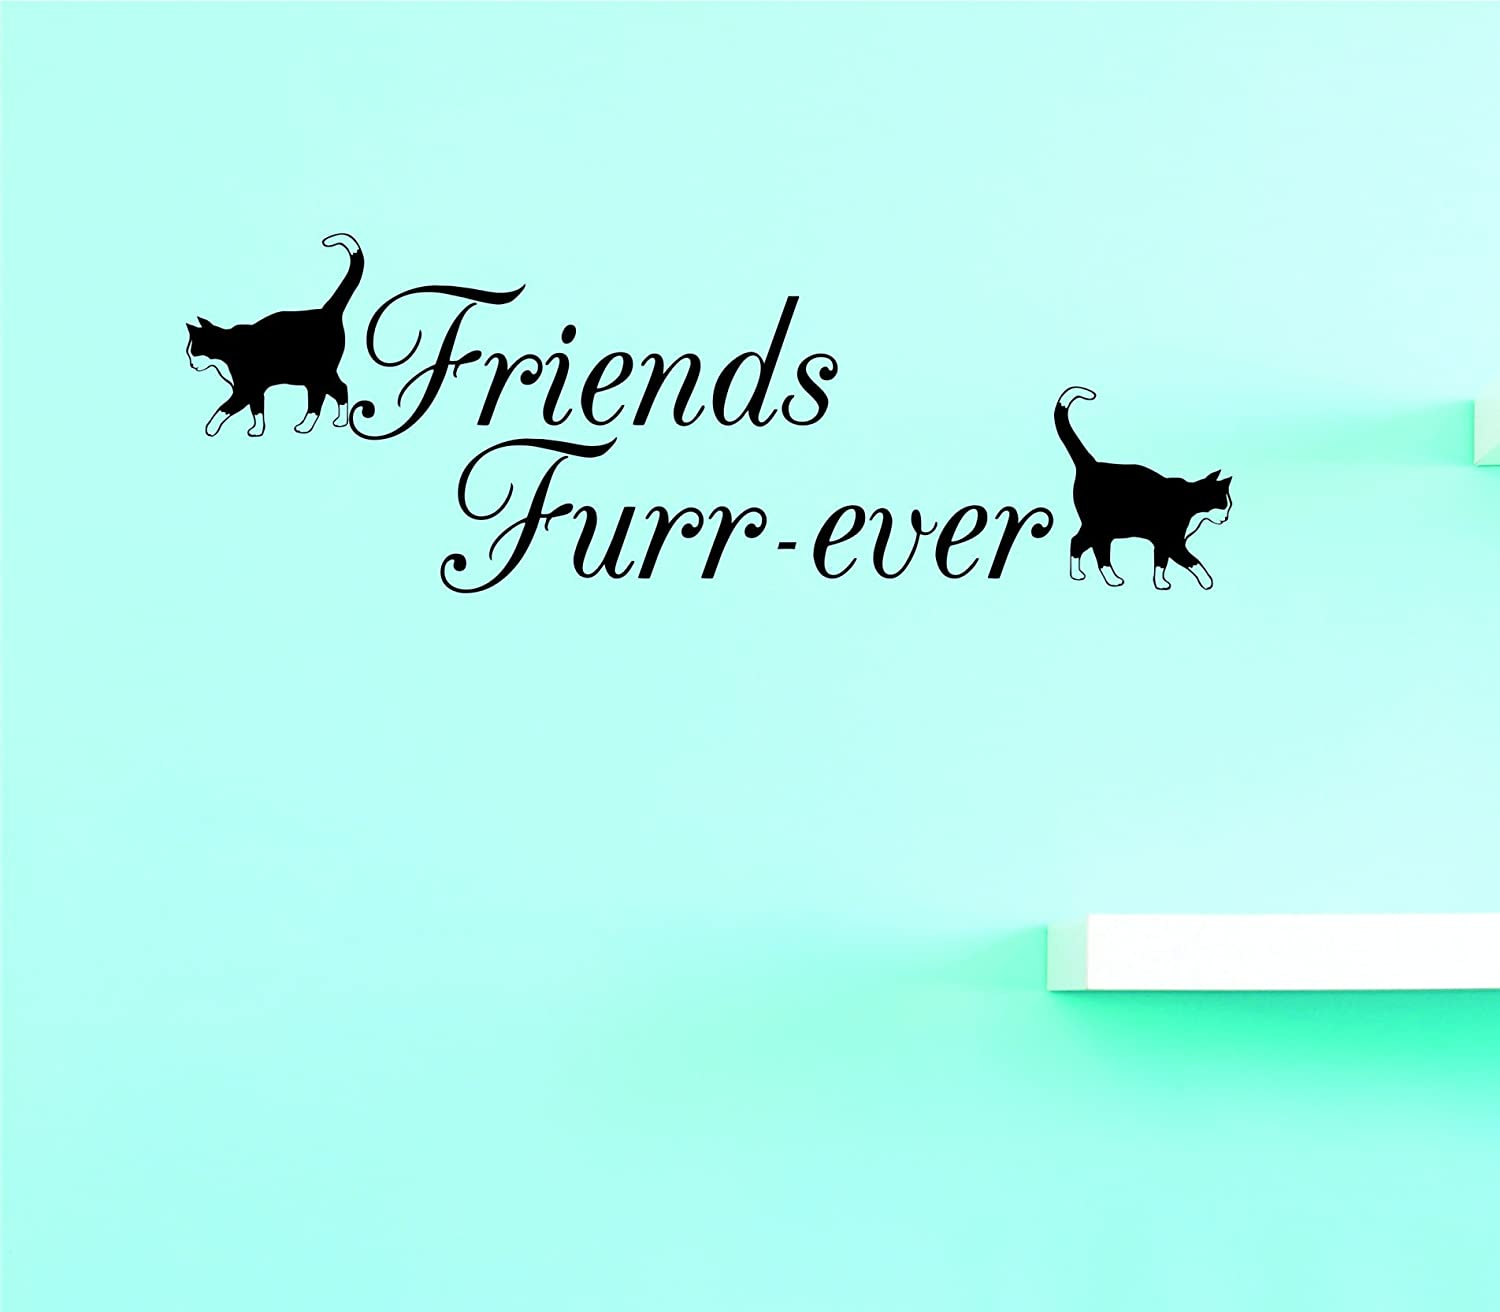 Design with Vinyl JER 2196 1 Hot New Decals Friends Furr-ever Wall Art Size: 8 Inches x 20 Inches Color: Black 8' x 20'